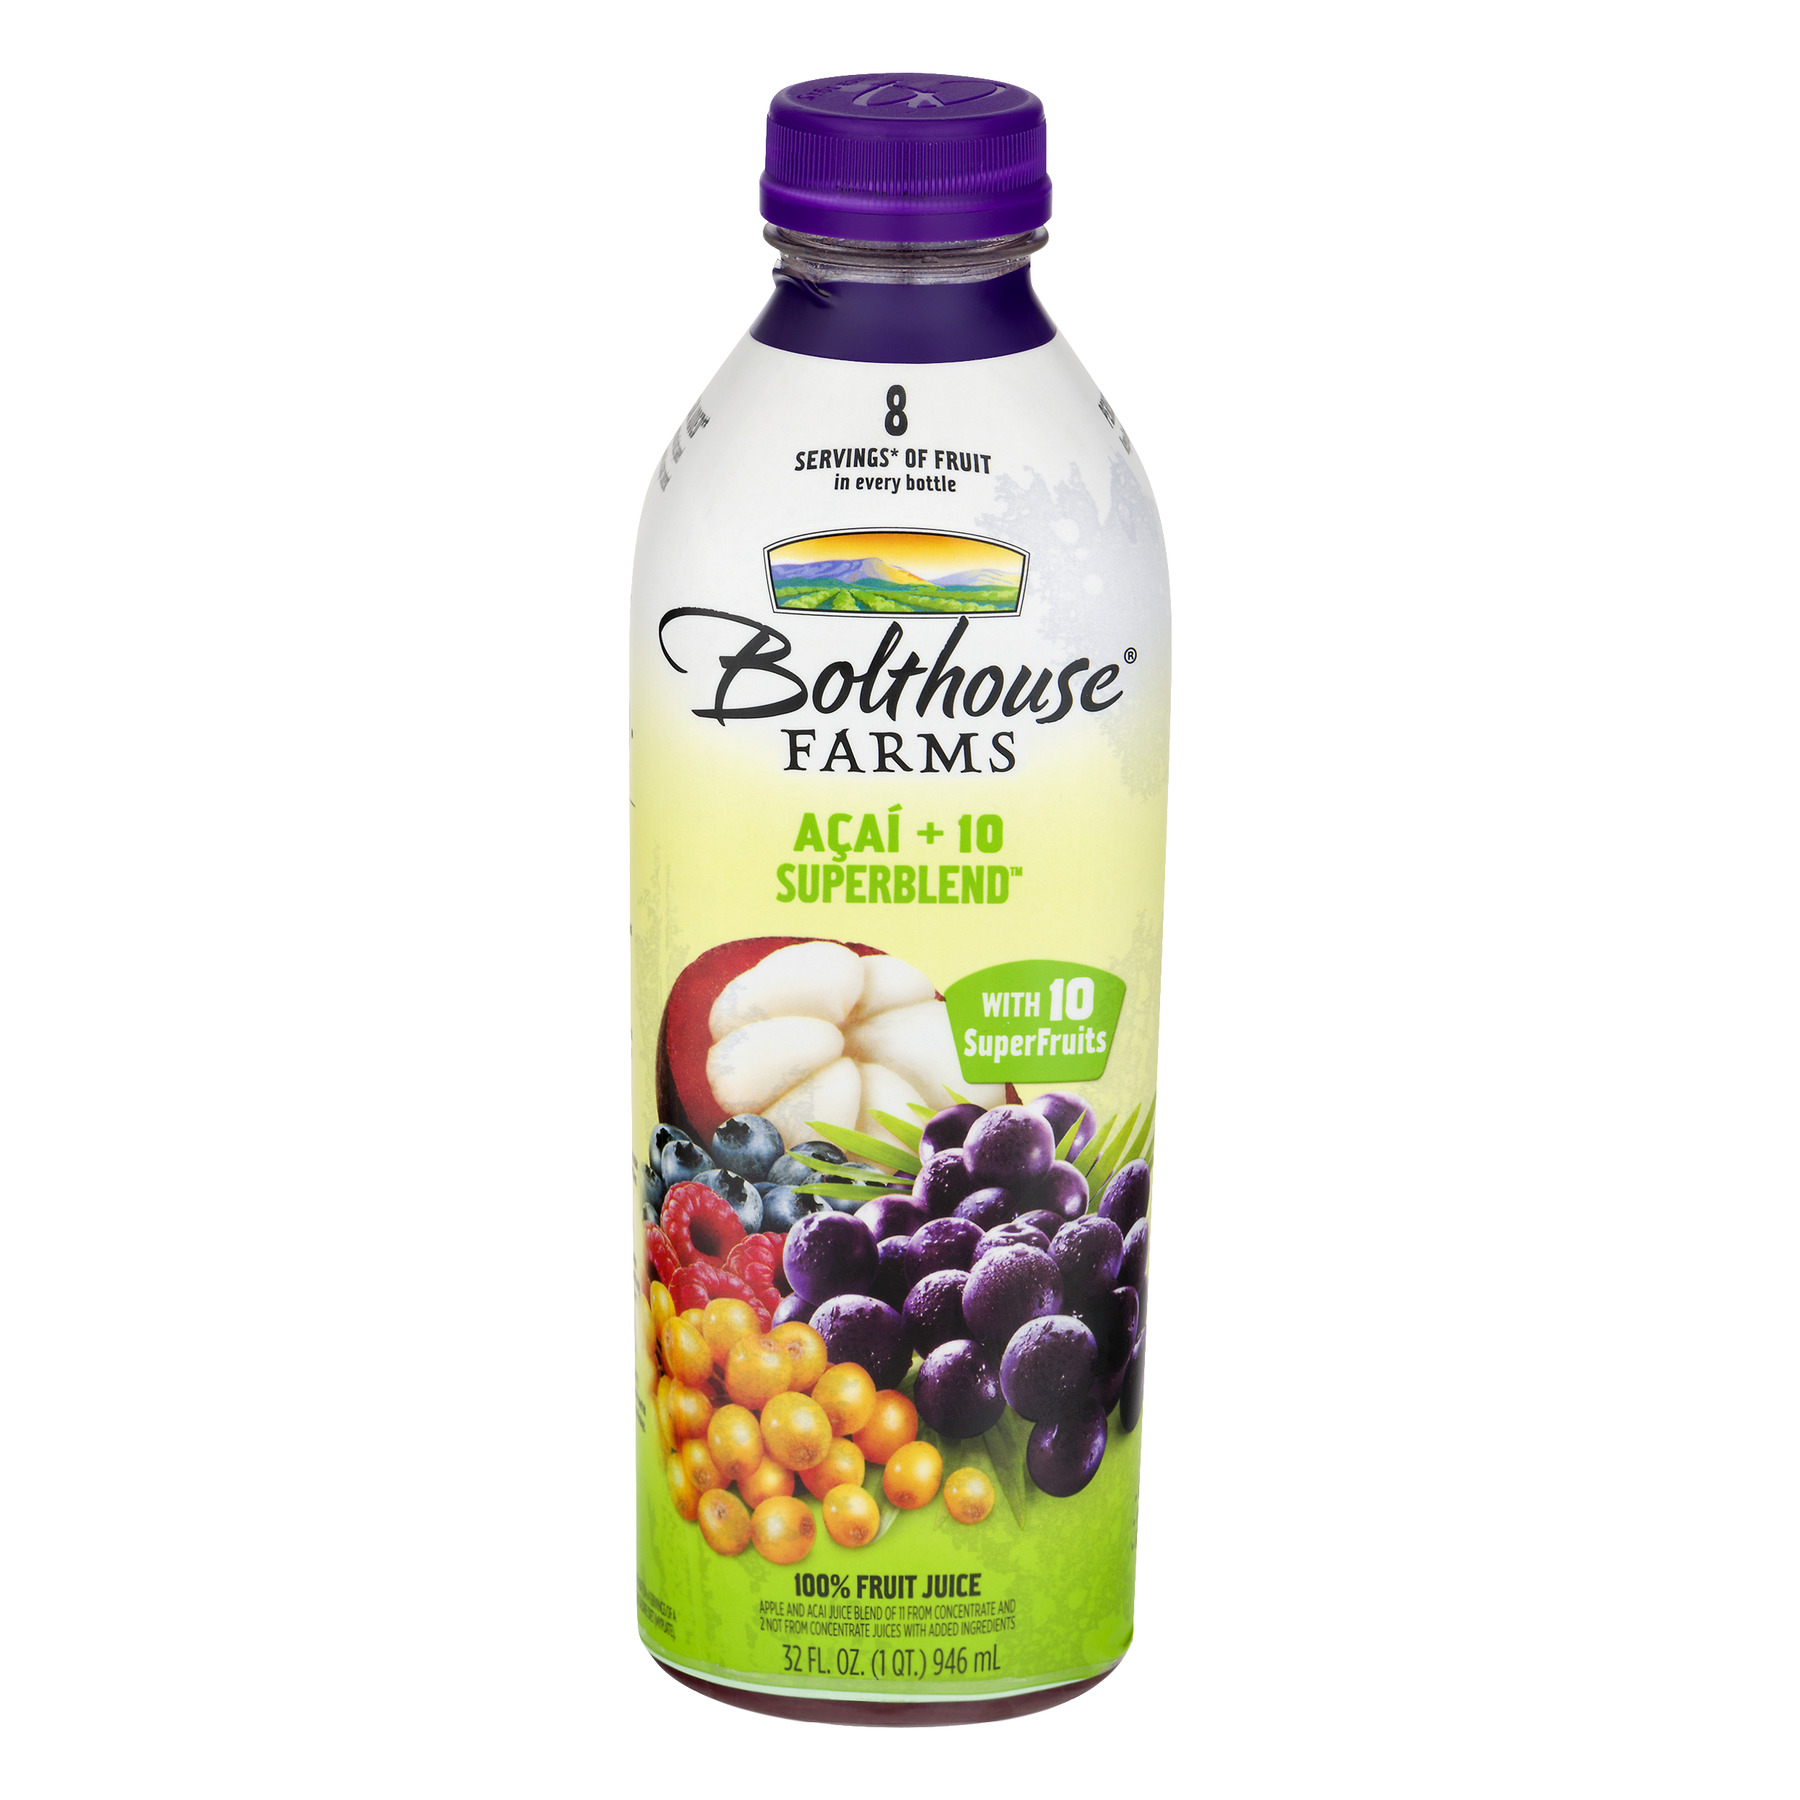 Bolthouse Farms Acai + 10 Superblend 100% Fruit Juice + Boosts 32 fl. oz. Bottle